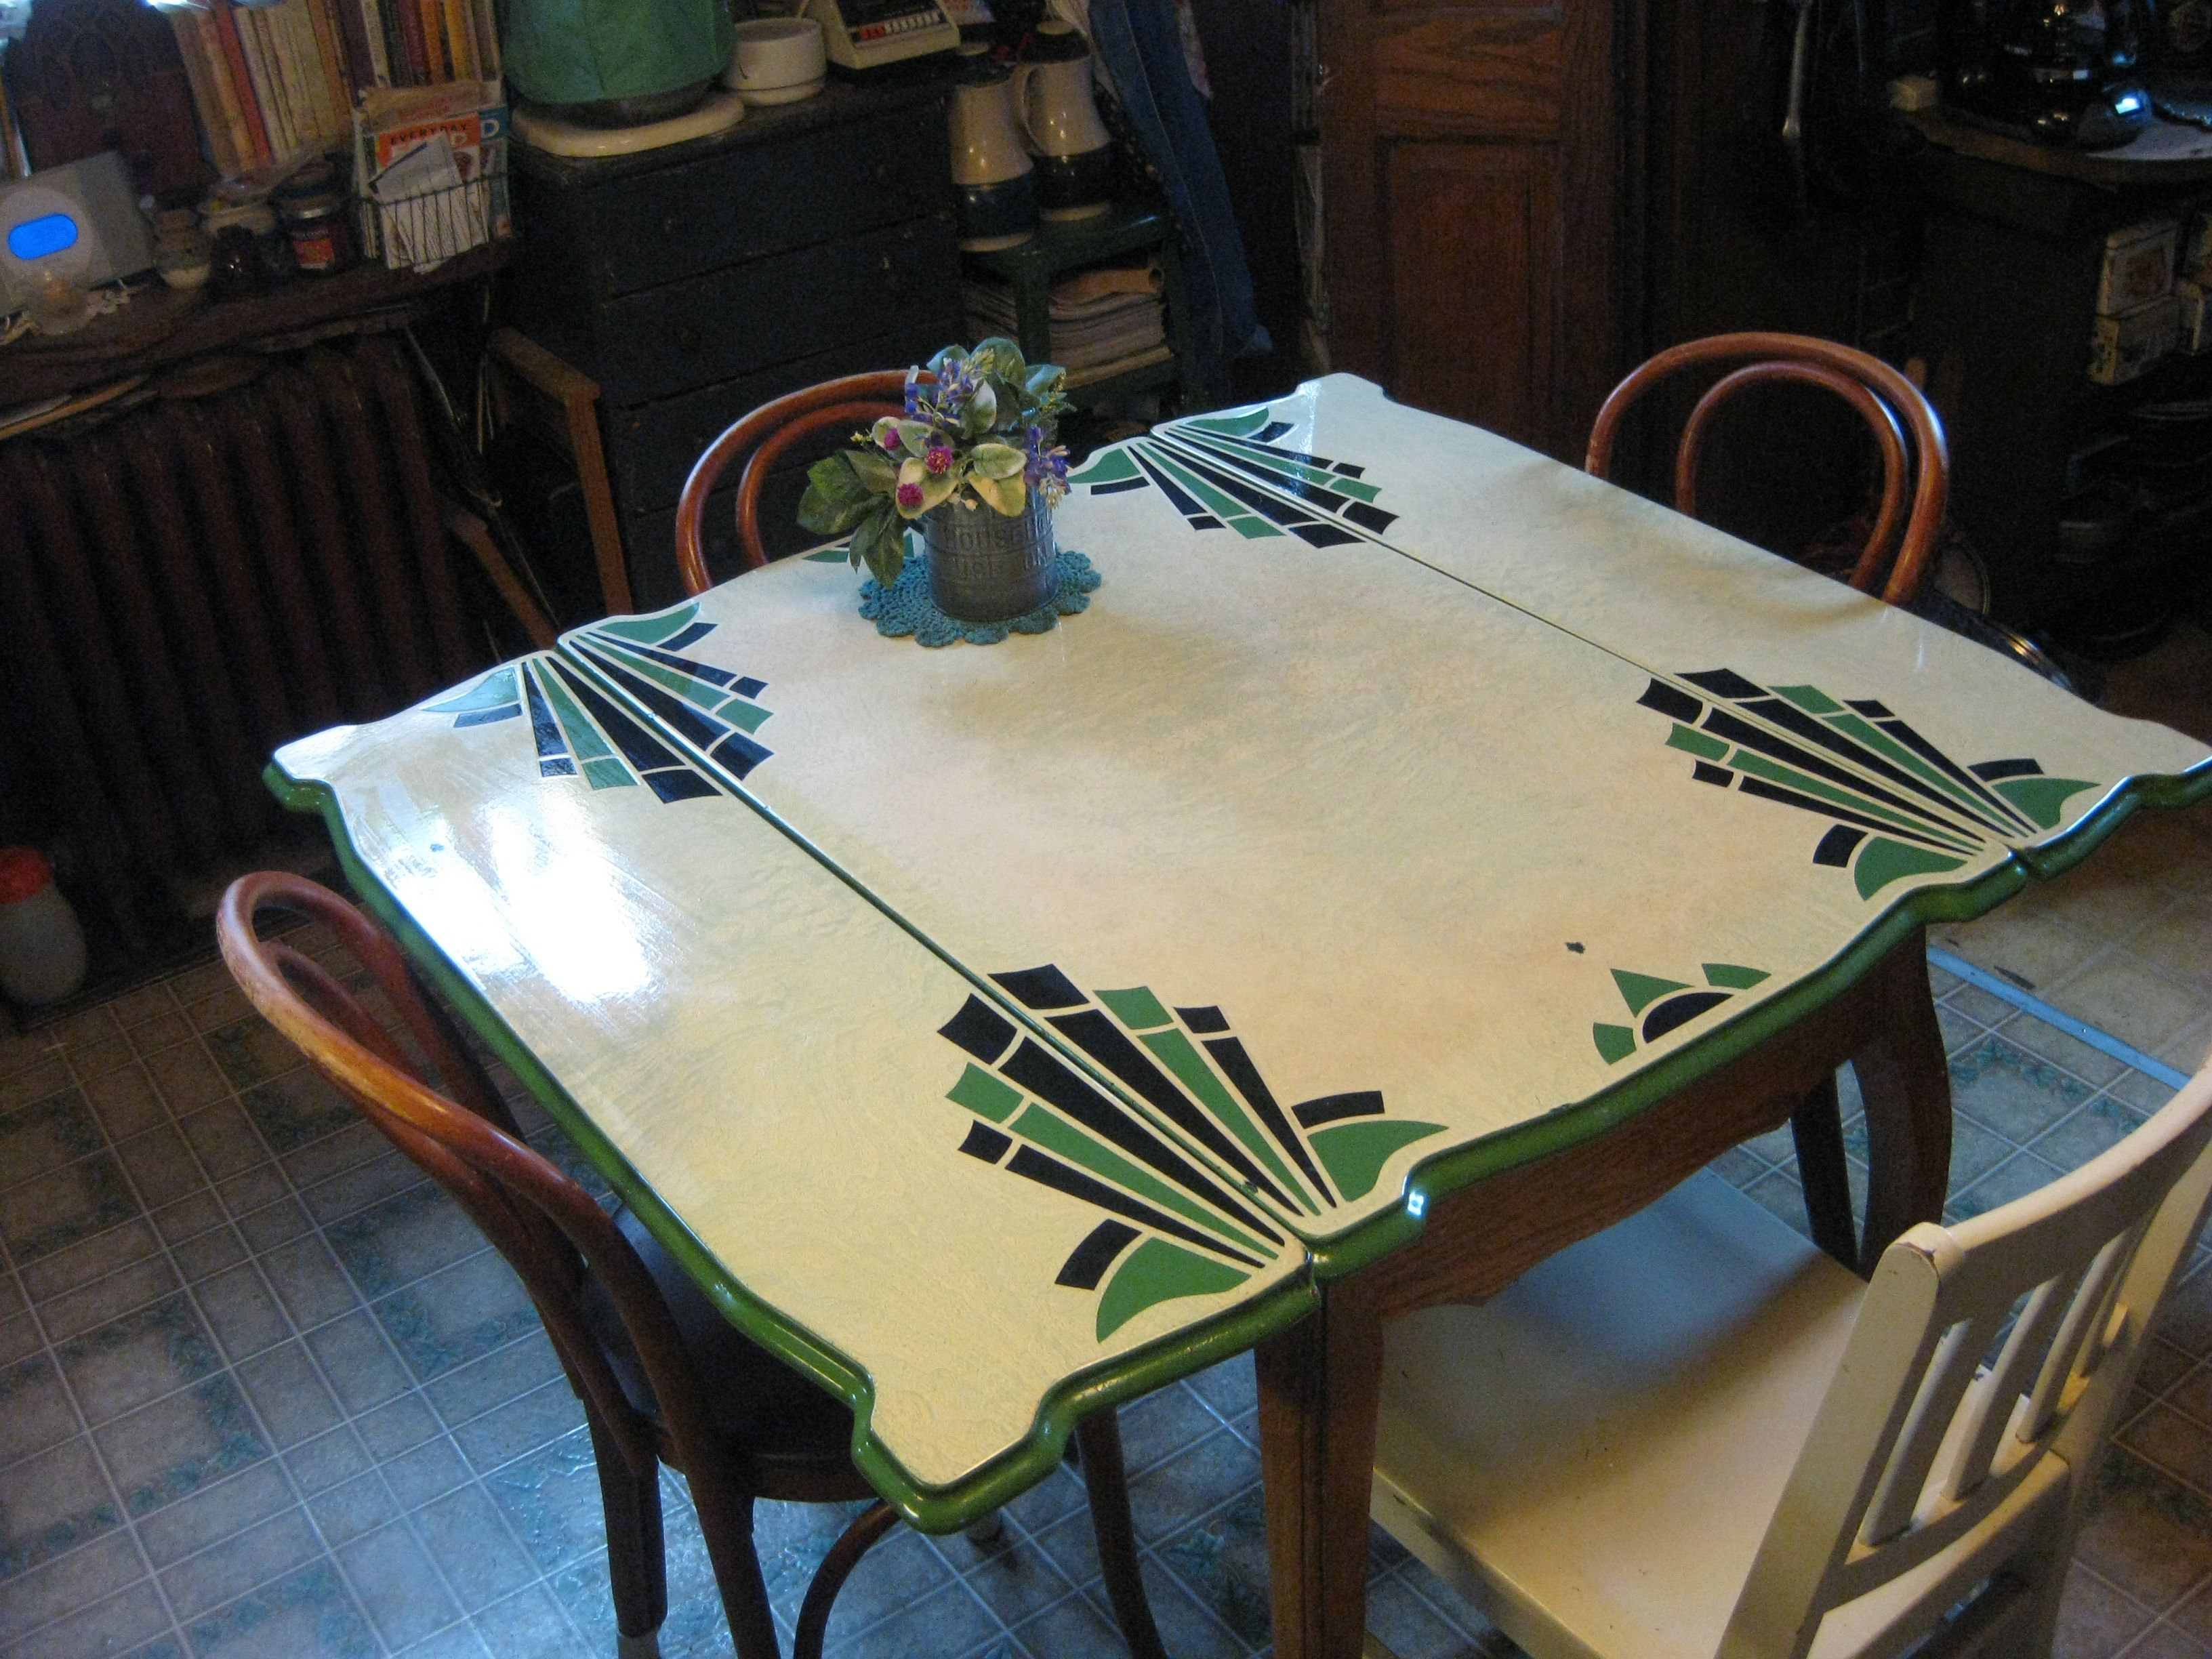 My Circa 1920s Enamel Topped Kitchen Table Bottom Legs Are Curved And In The Queen Anne Style Vintage Kitchen Table Art Deco Kitchen Vintage Kitchen